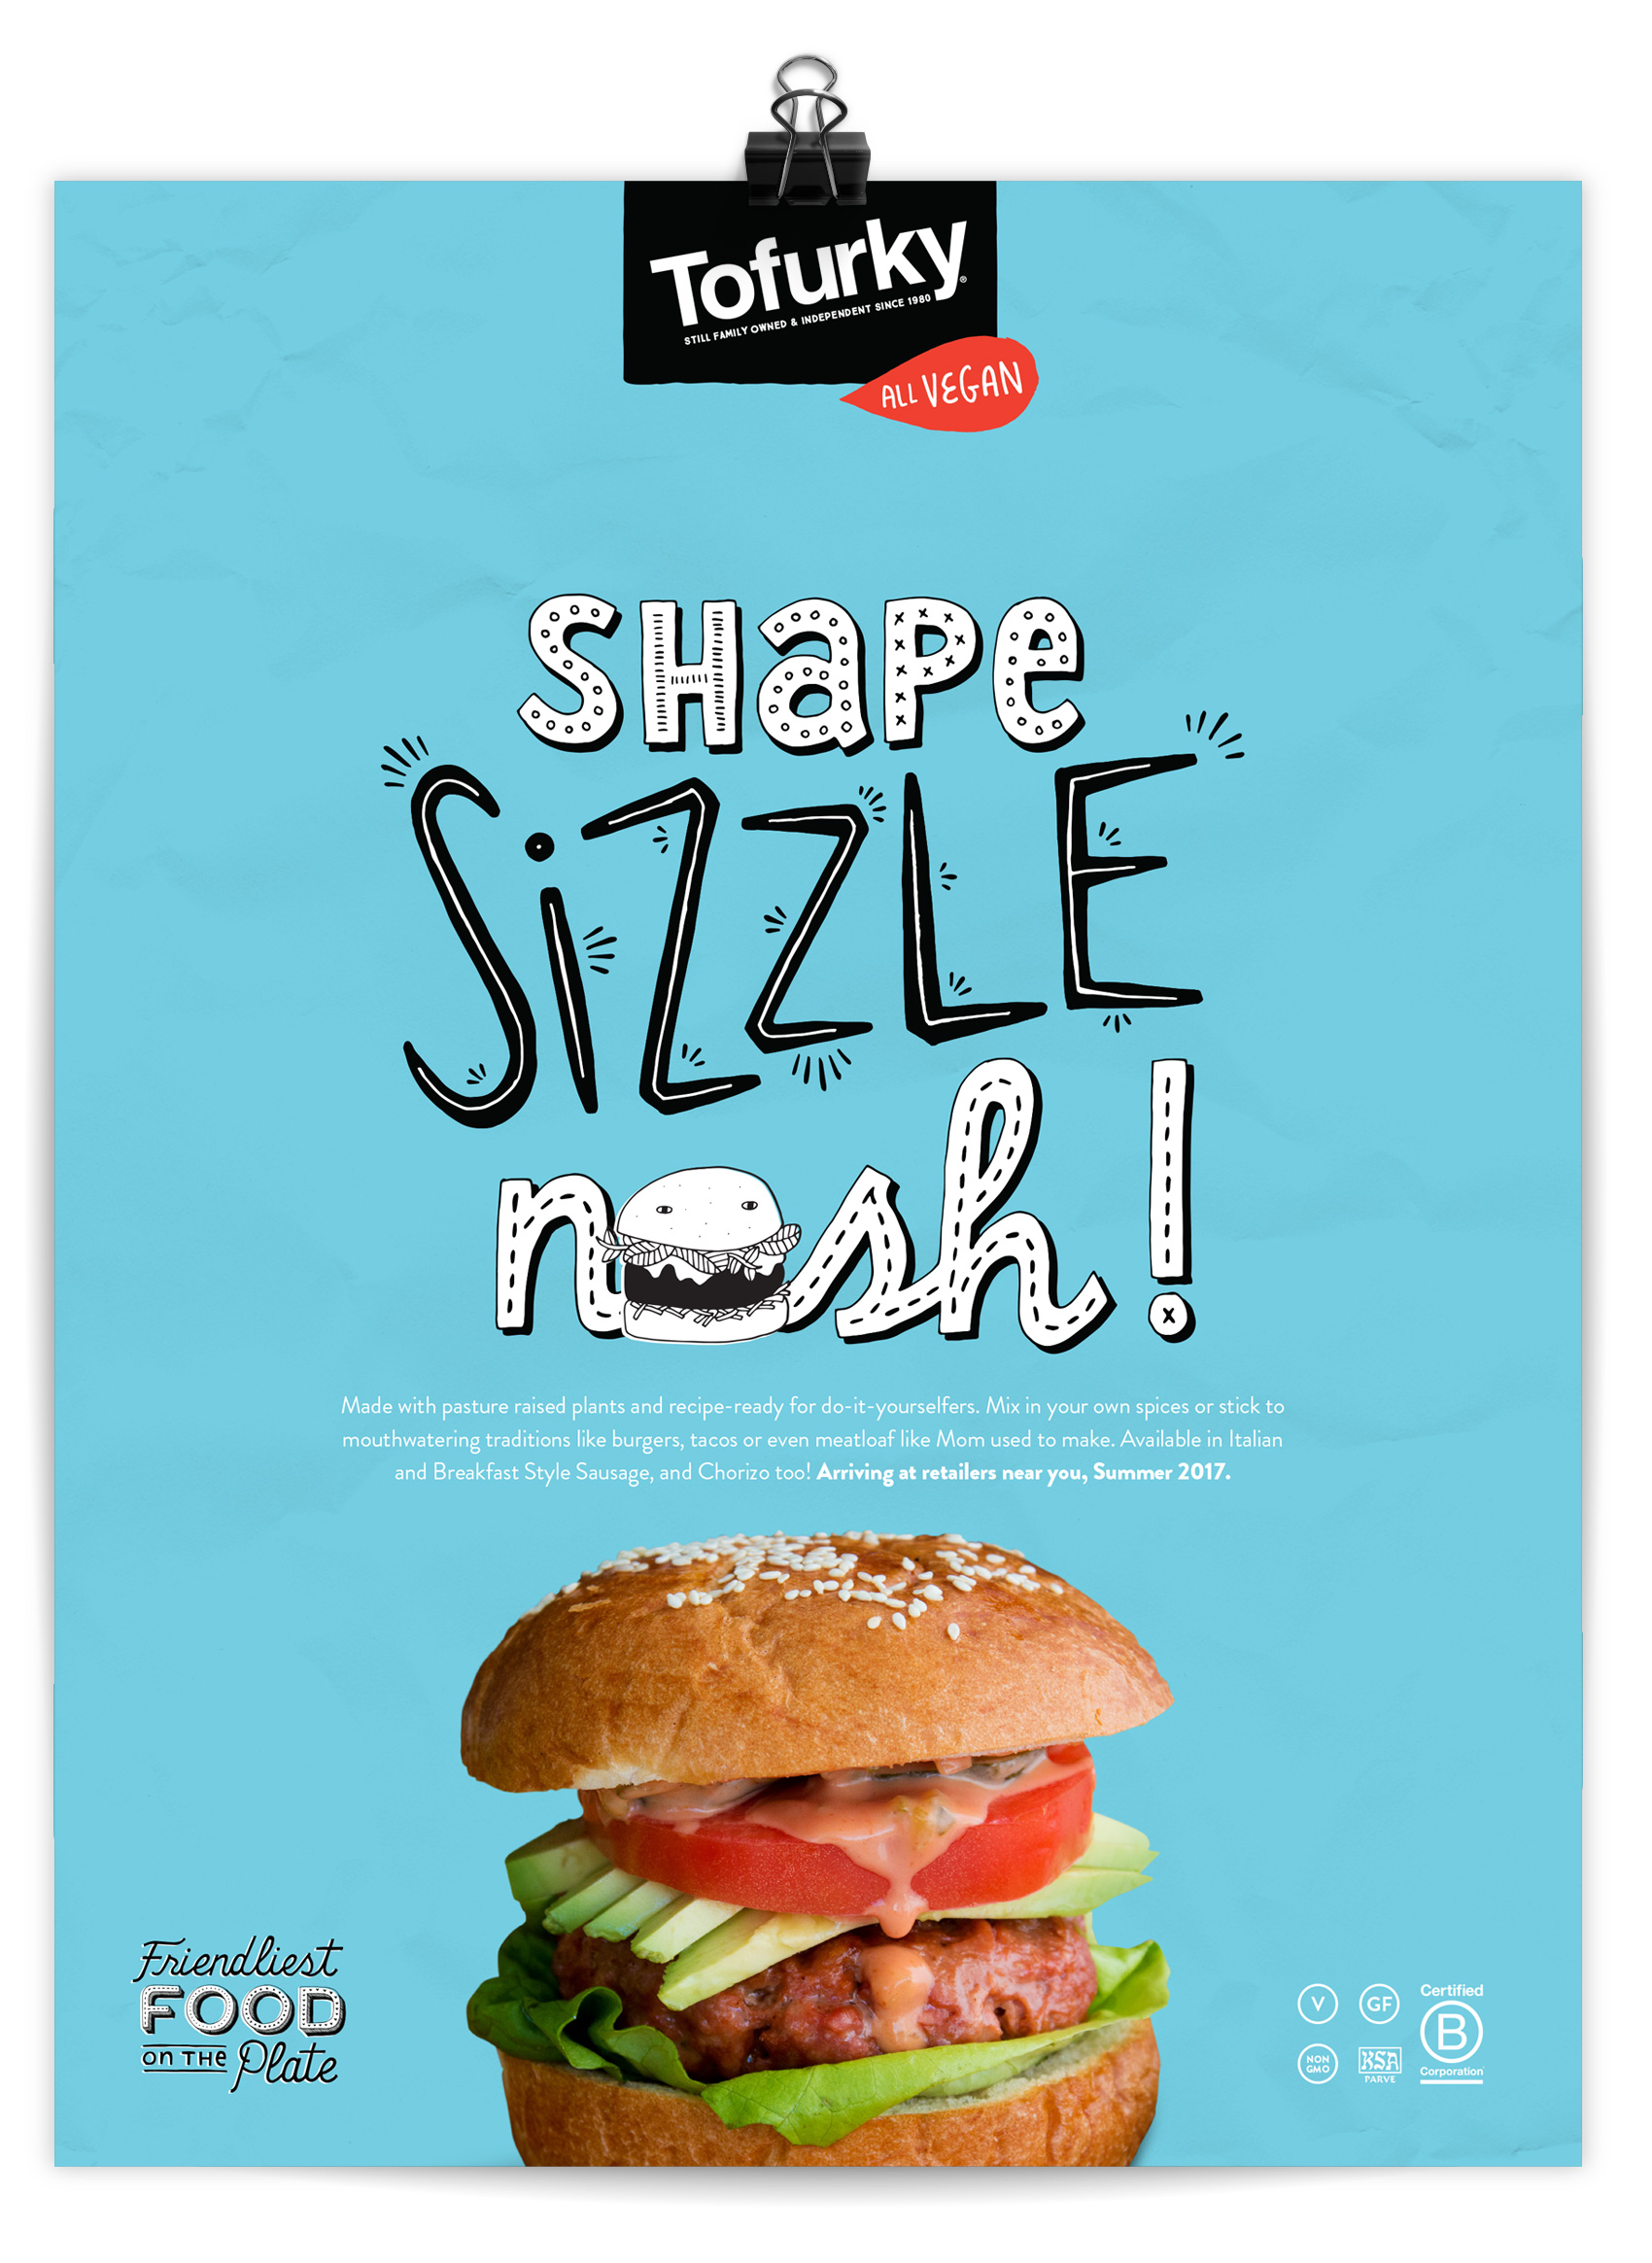 Tofurky DIY burger new product ad.